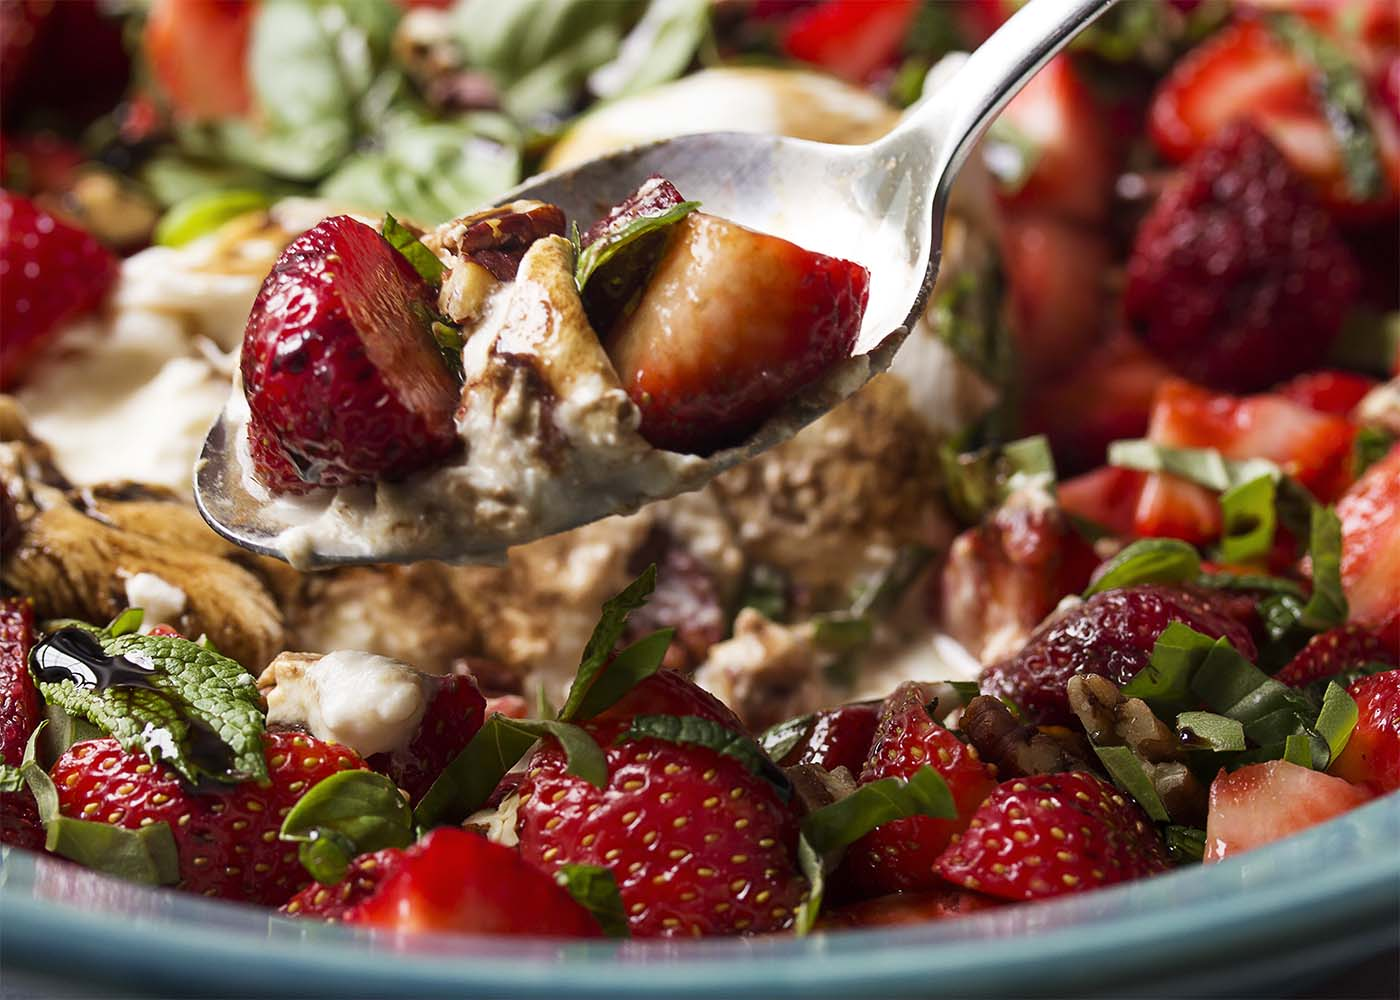 Serving a spoonful of strawberry burrata salad with the serving bowl in the background.